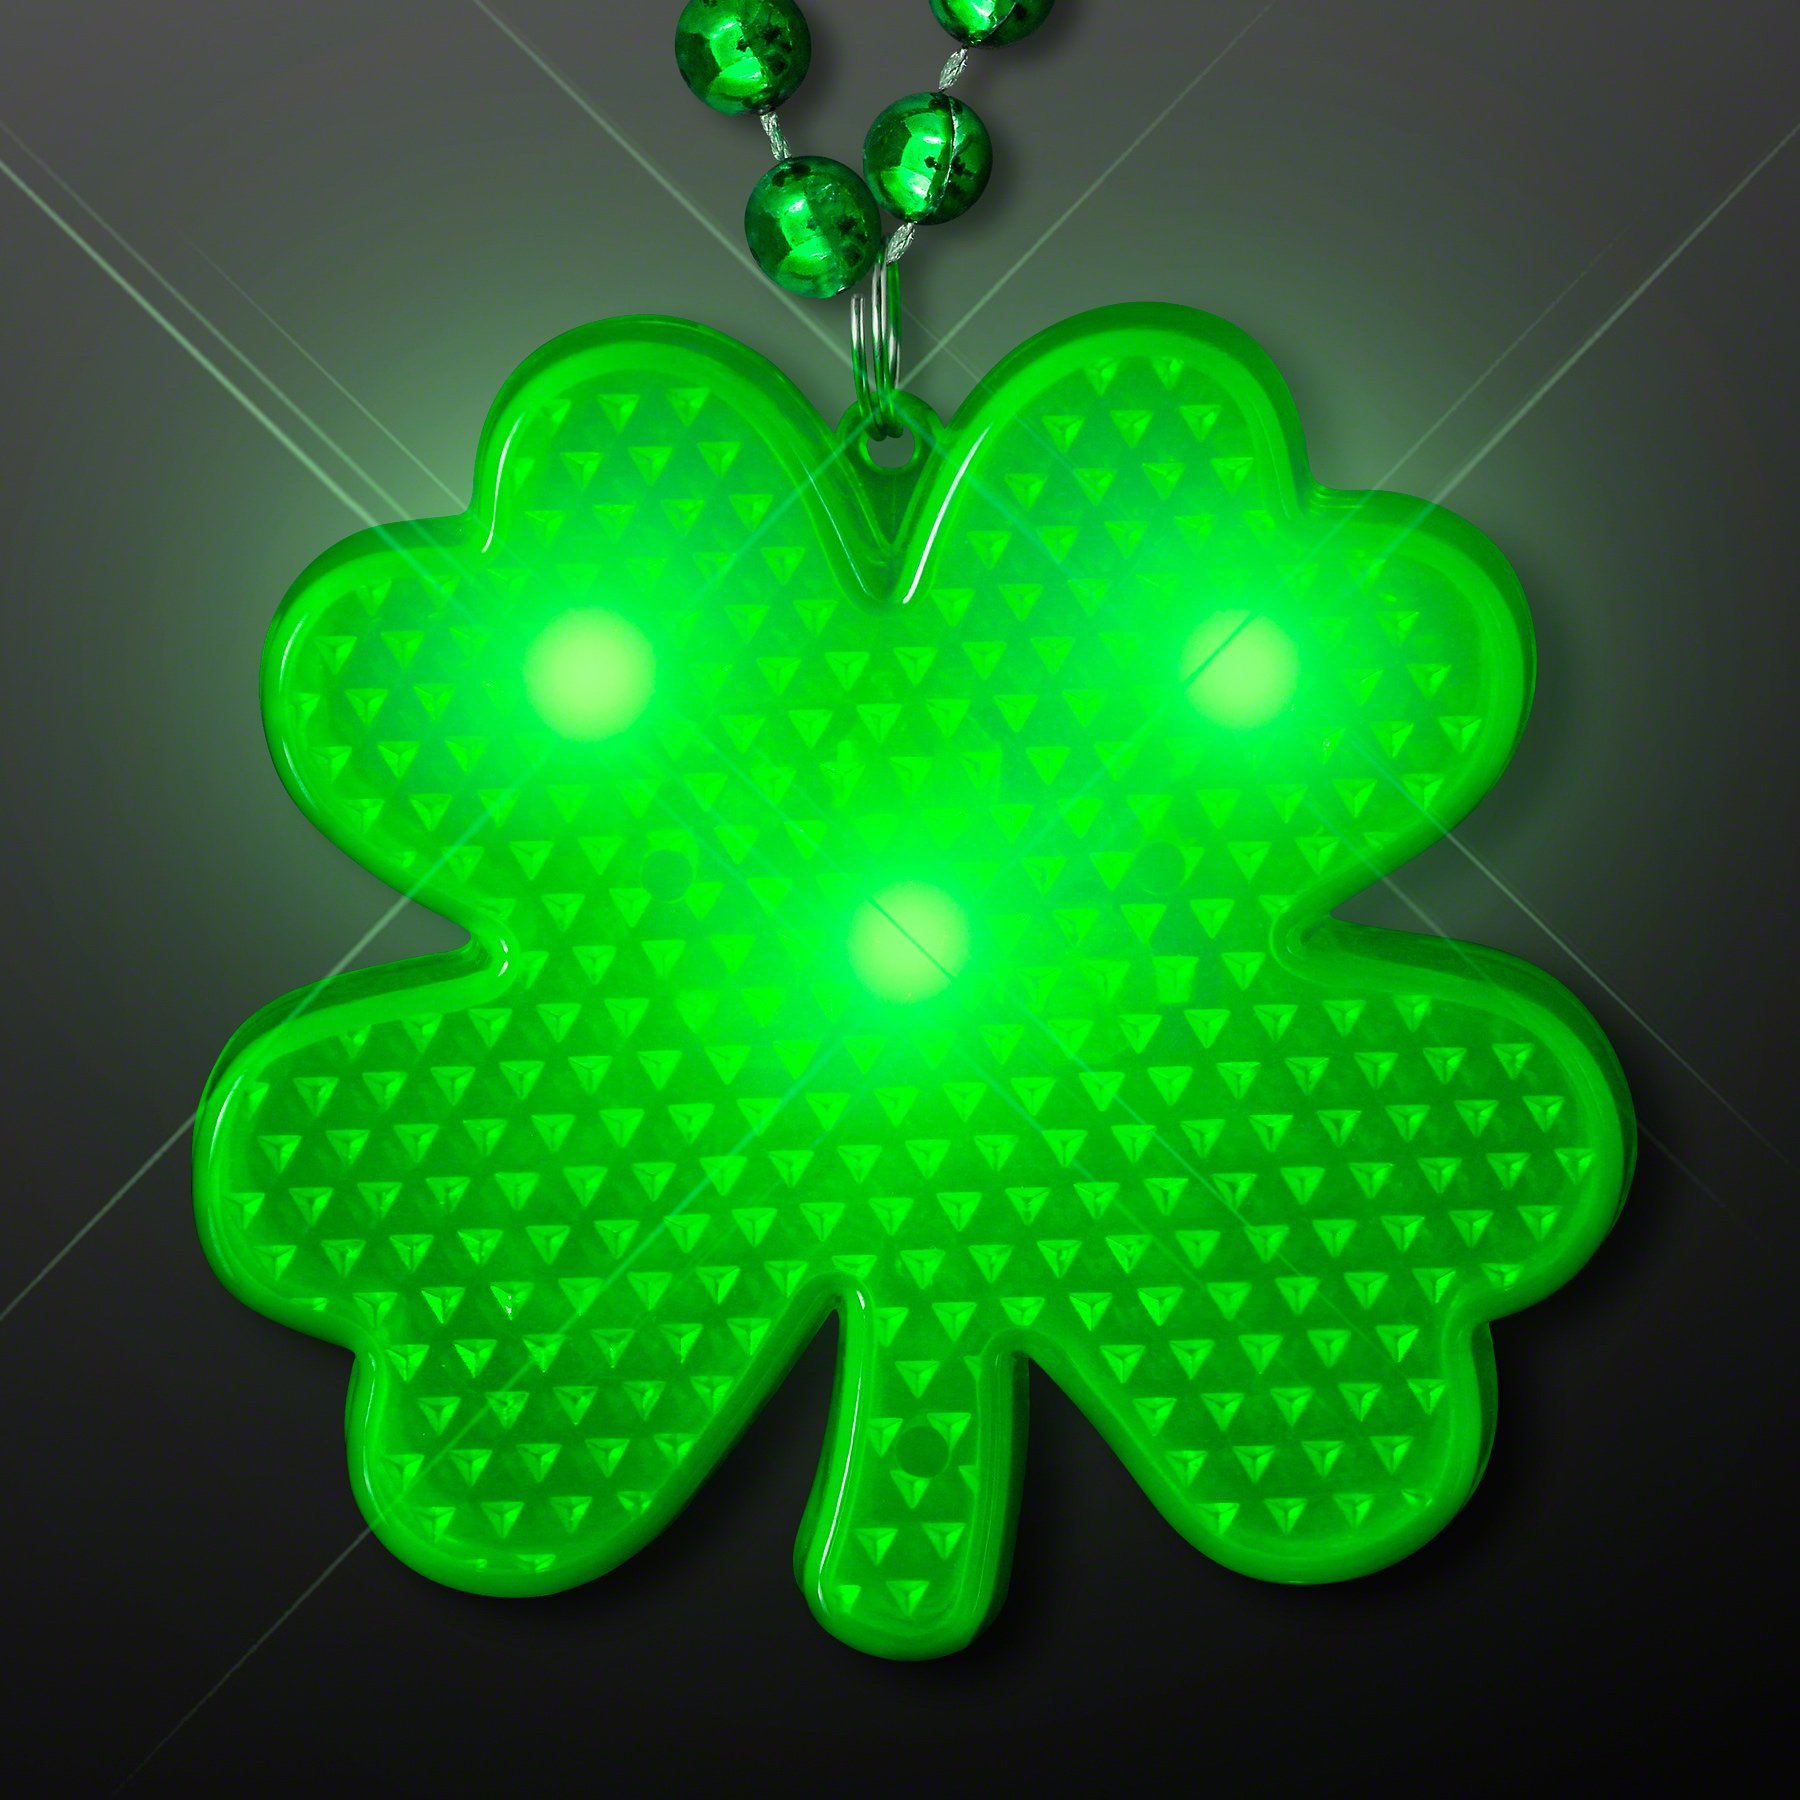 Flashing Light Up LED Shamrock Charm on Bead Necklaces (Set of 12)